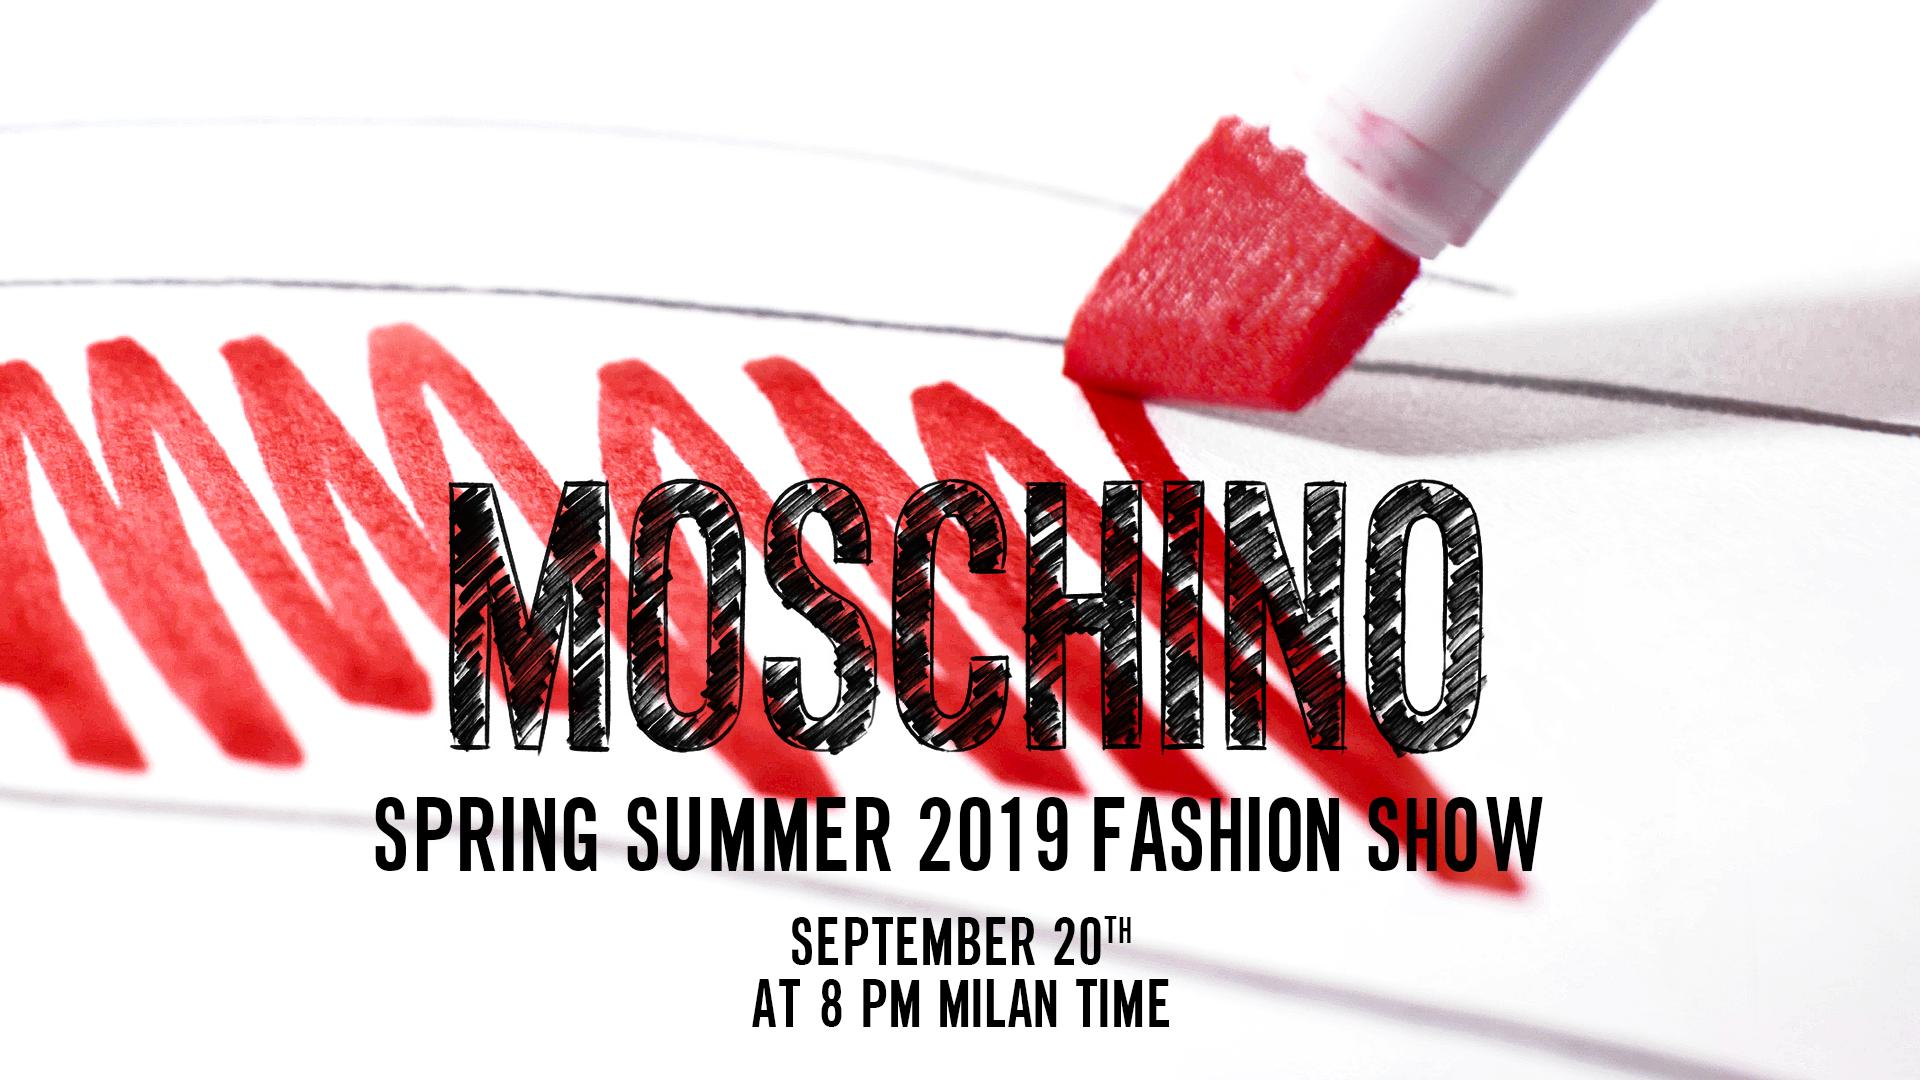 Moschino Spring Summer 2019 Fashion Show Live Streaming